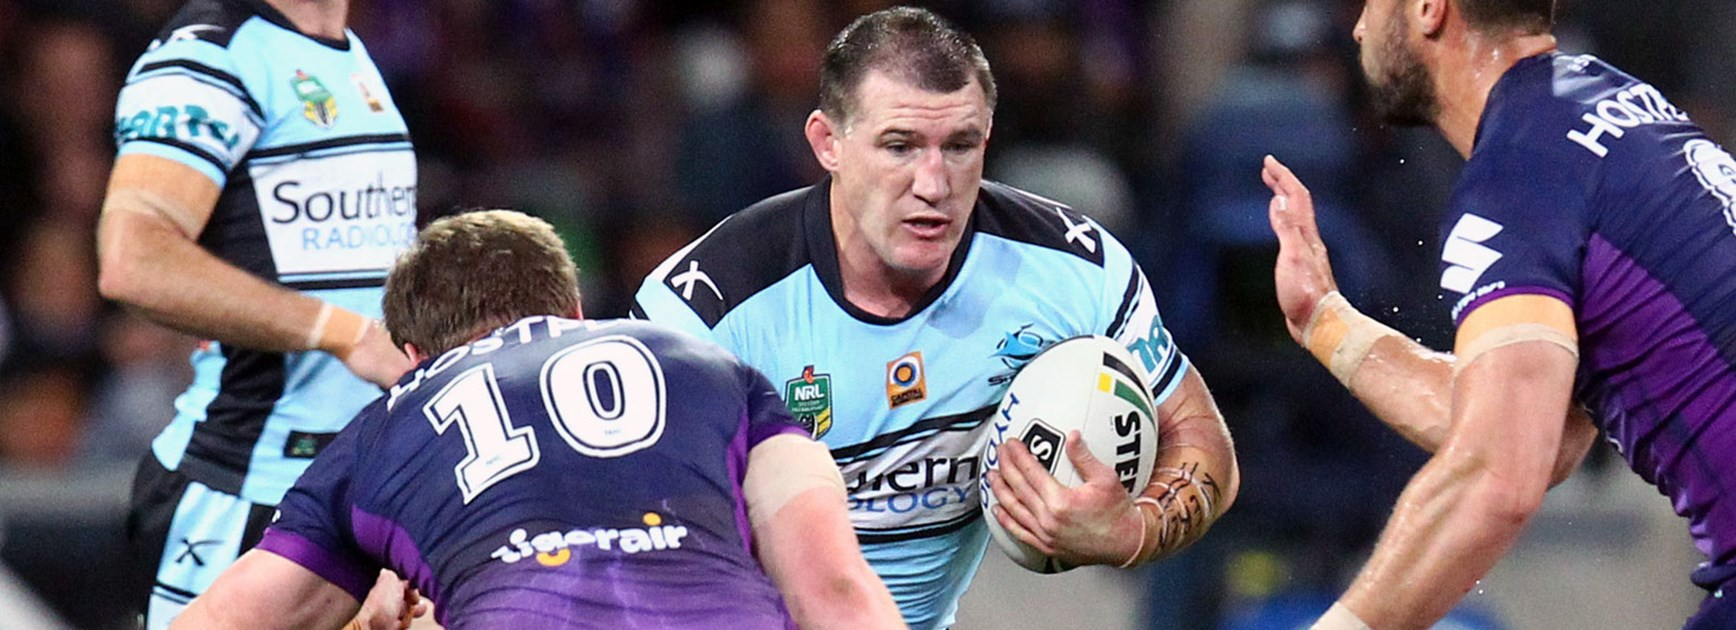 Sharks captain Paul Gallen against the Storm in Round 26.